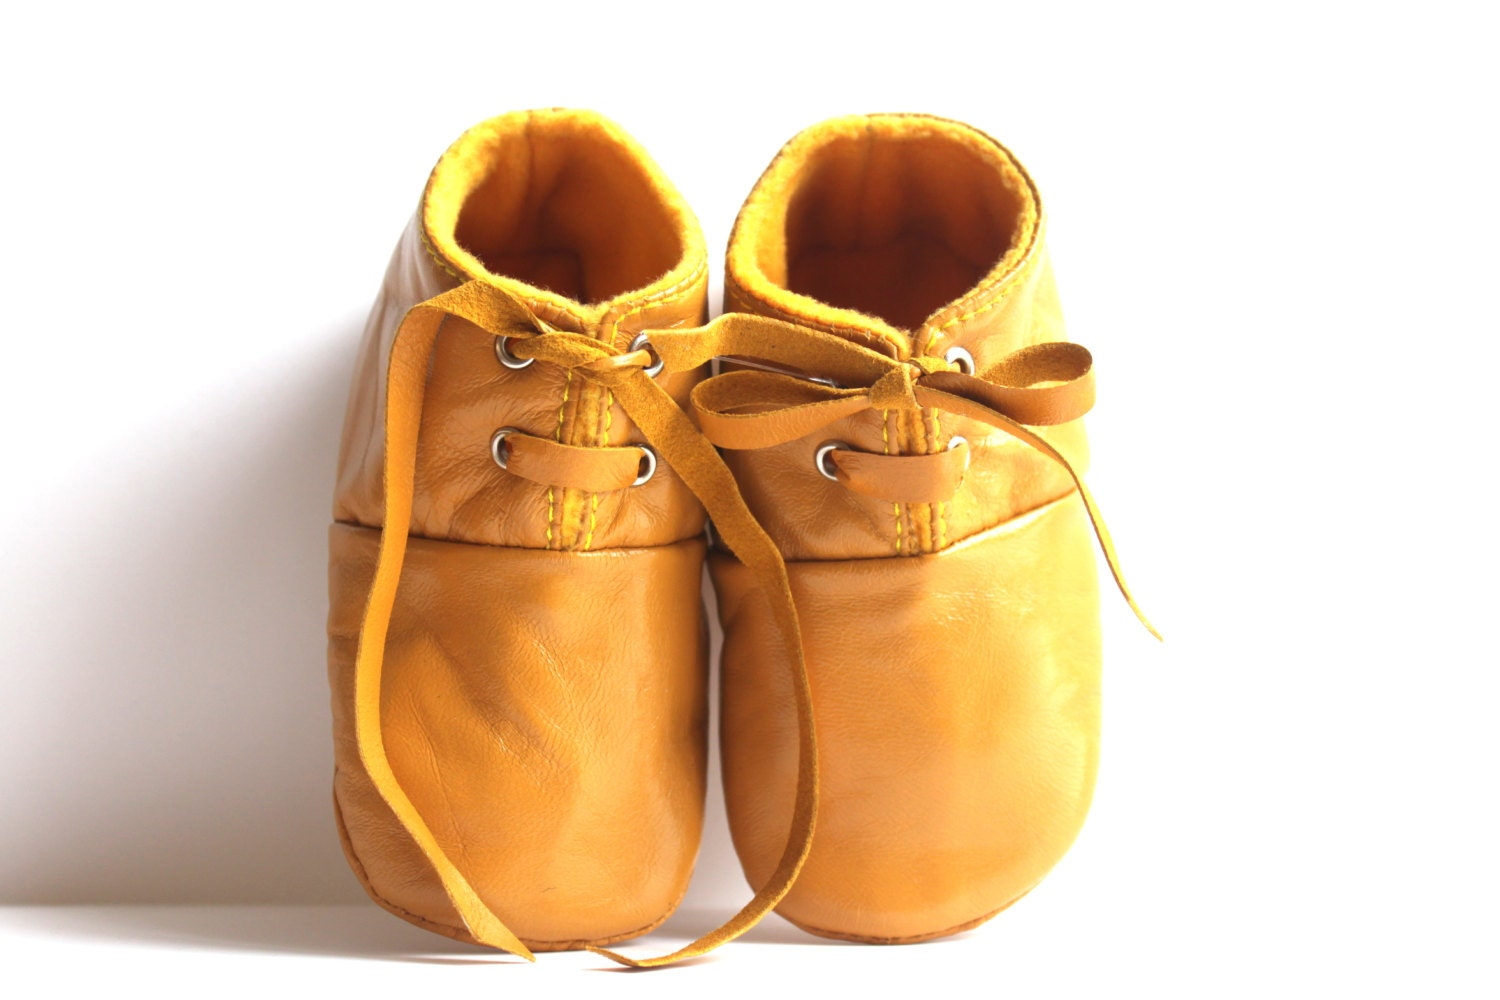 6 12 Months Slippers Baby Shoes Lamb Leather mustard yellow